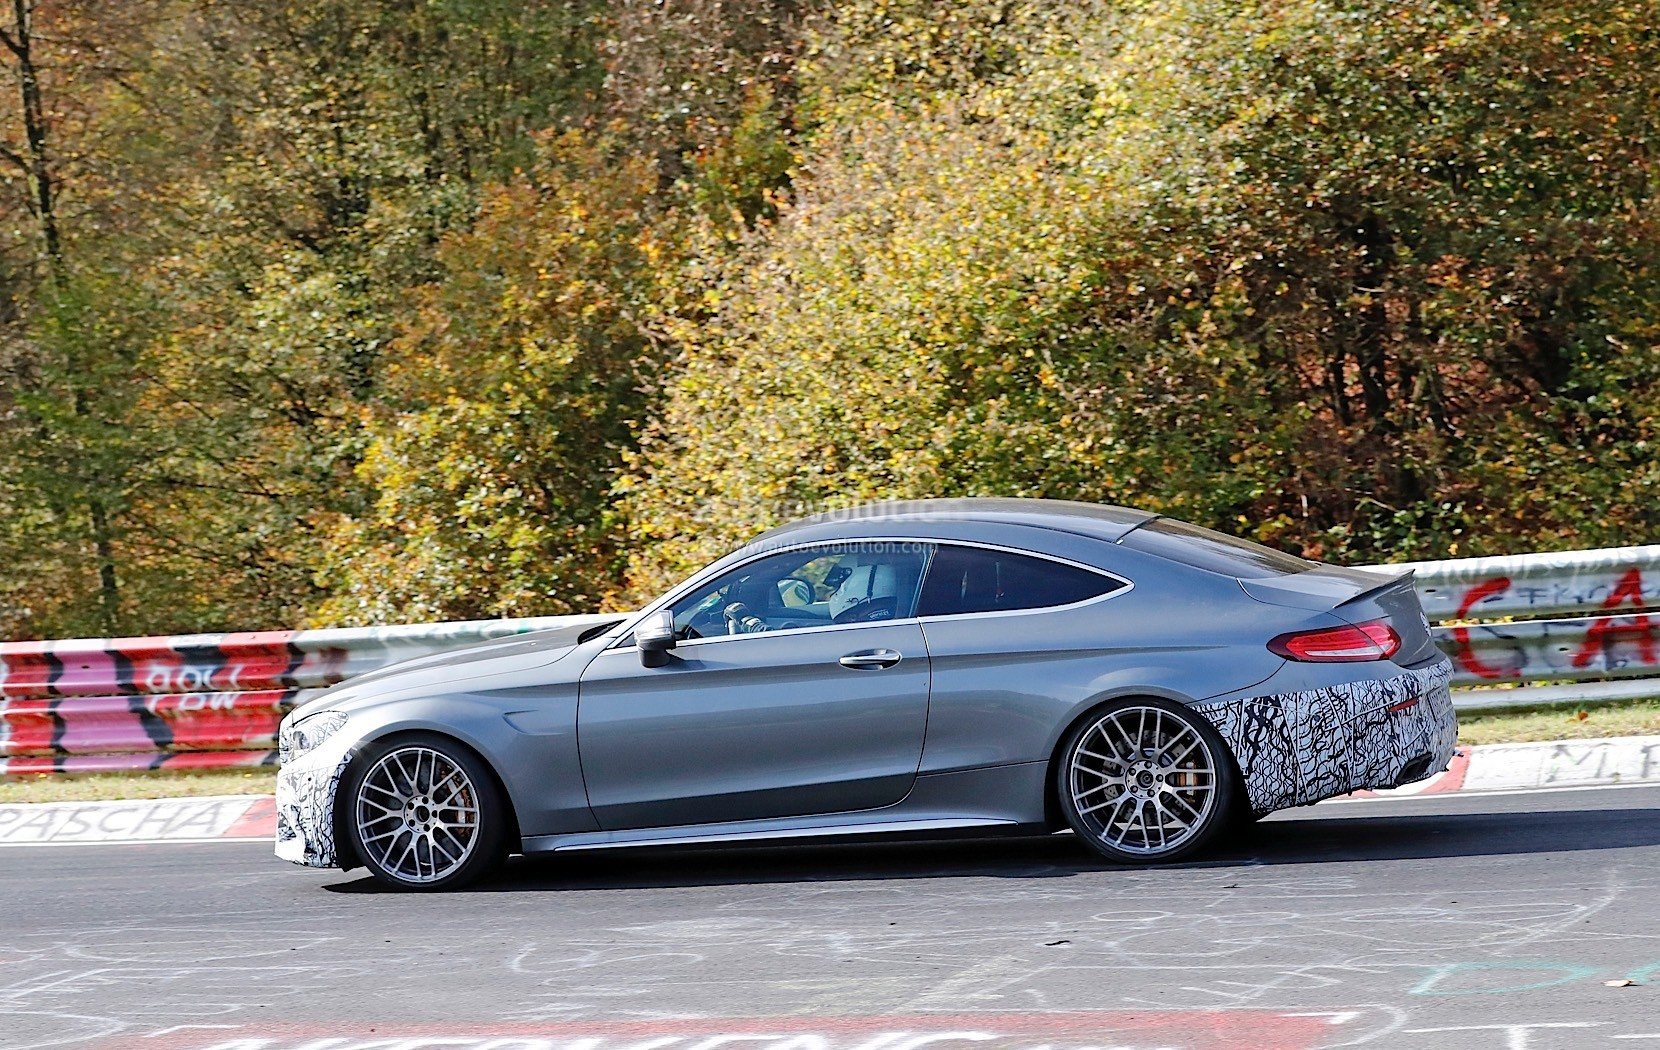 spyshots 2019 mercedes amg c63 s coupe reportedly gets extra horsepower autoevolution. Black Bedroom Furniture Sets. Home Design Ideas